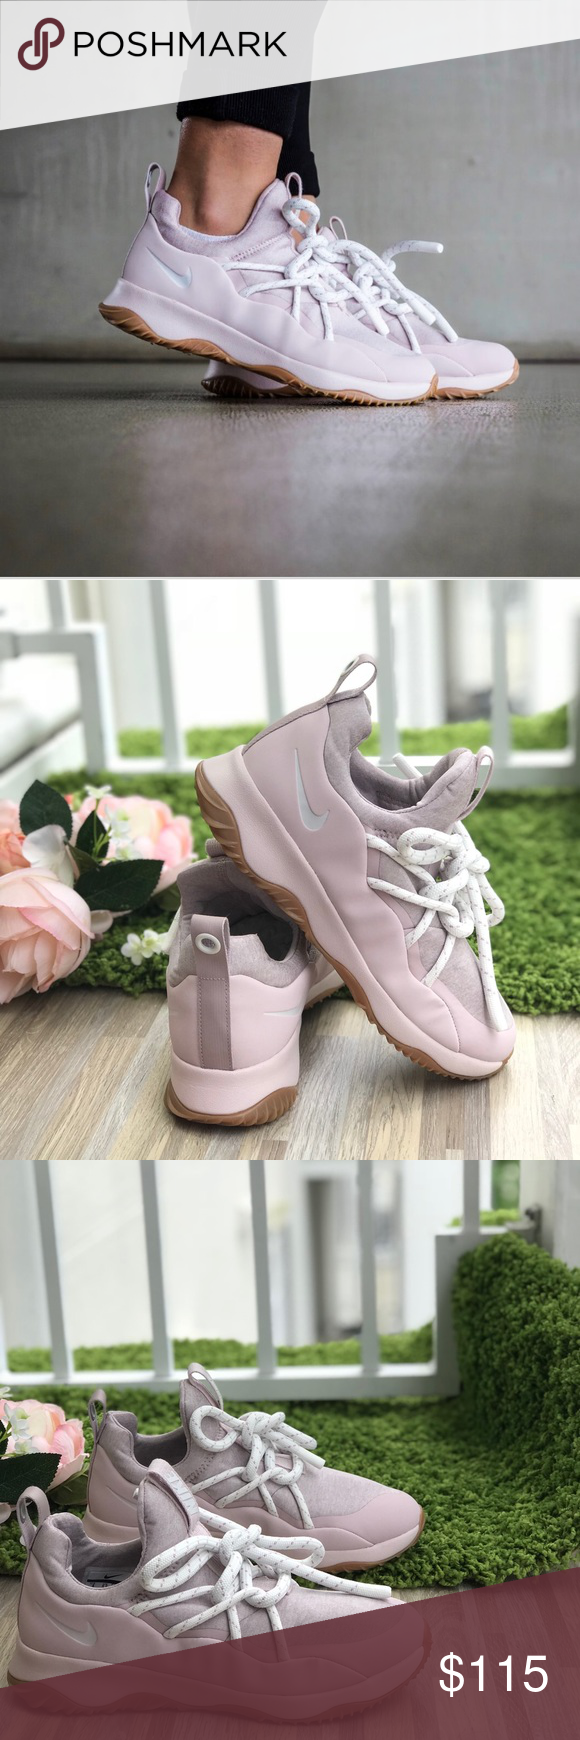 NWT Nike City Loop Arctic Pink WMNS Brand new with no lid box. Price is 98e23abca